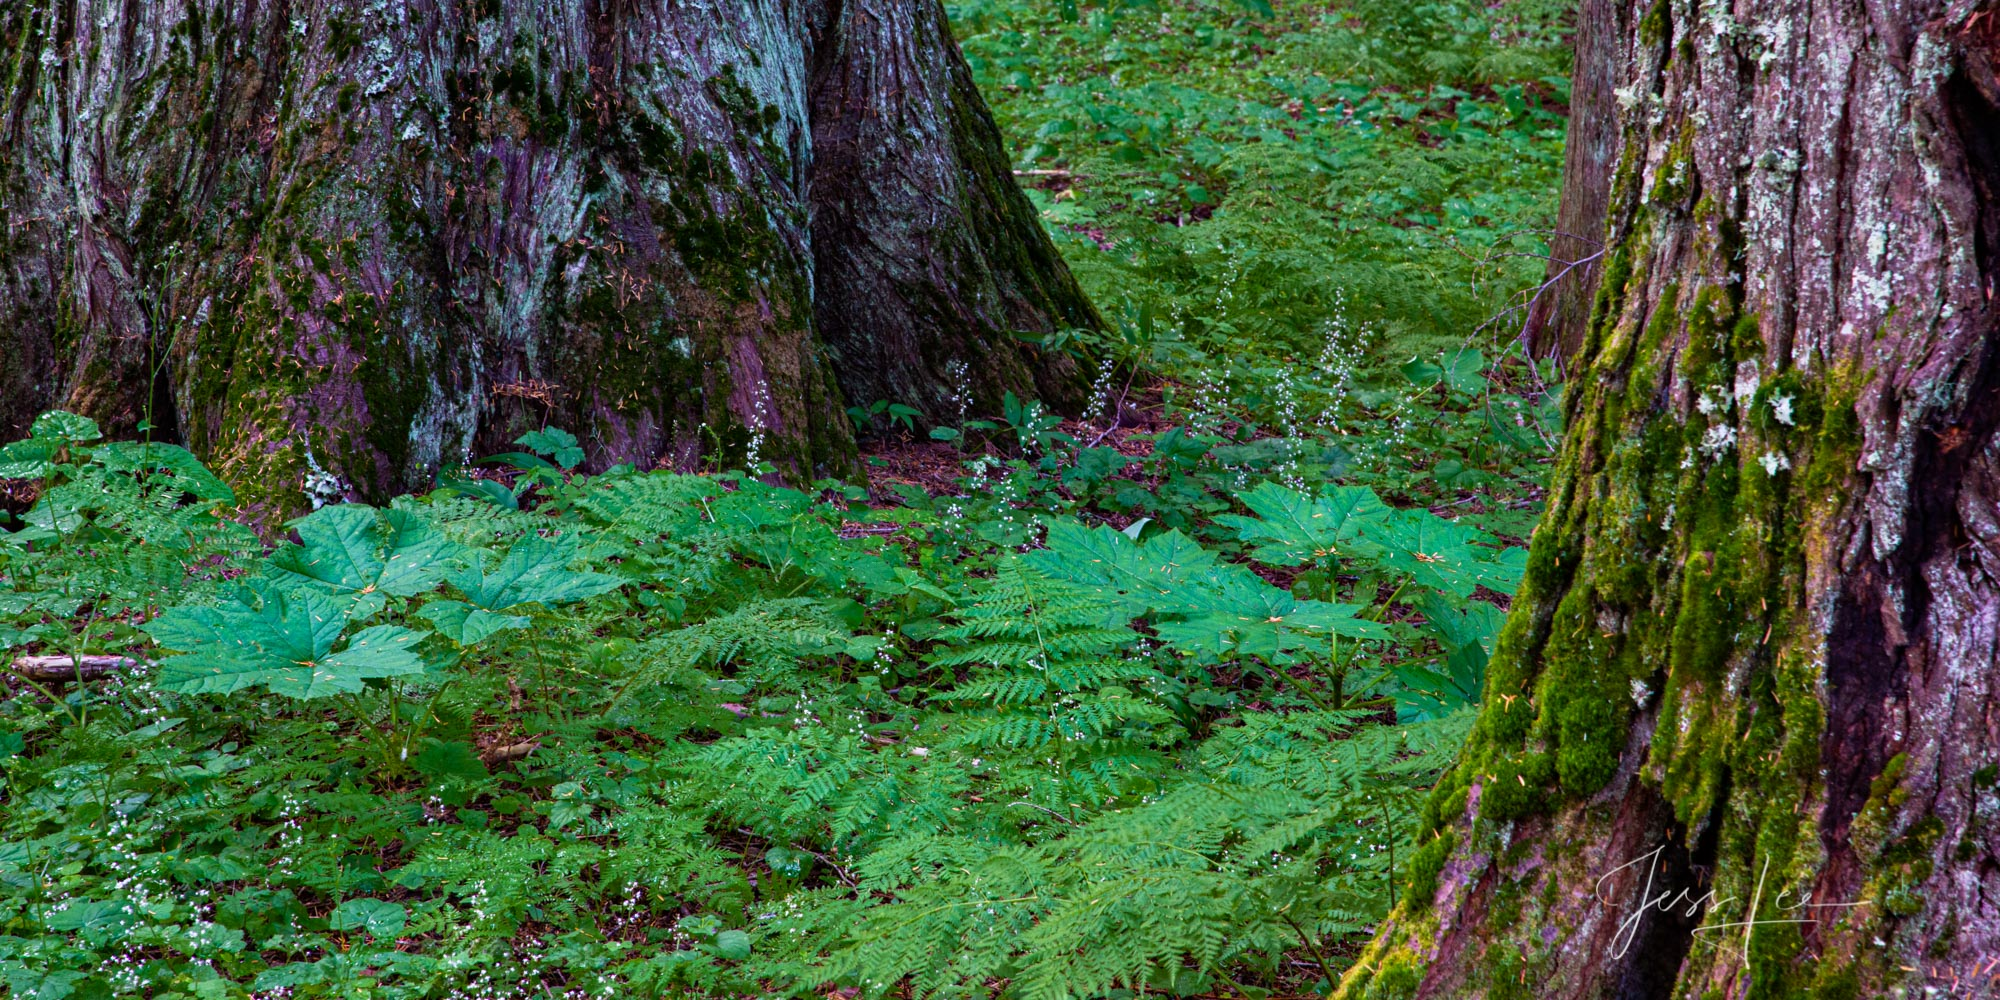 Forest Floor with green leaves